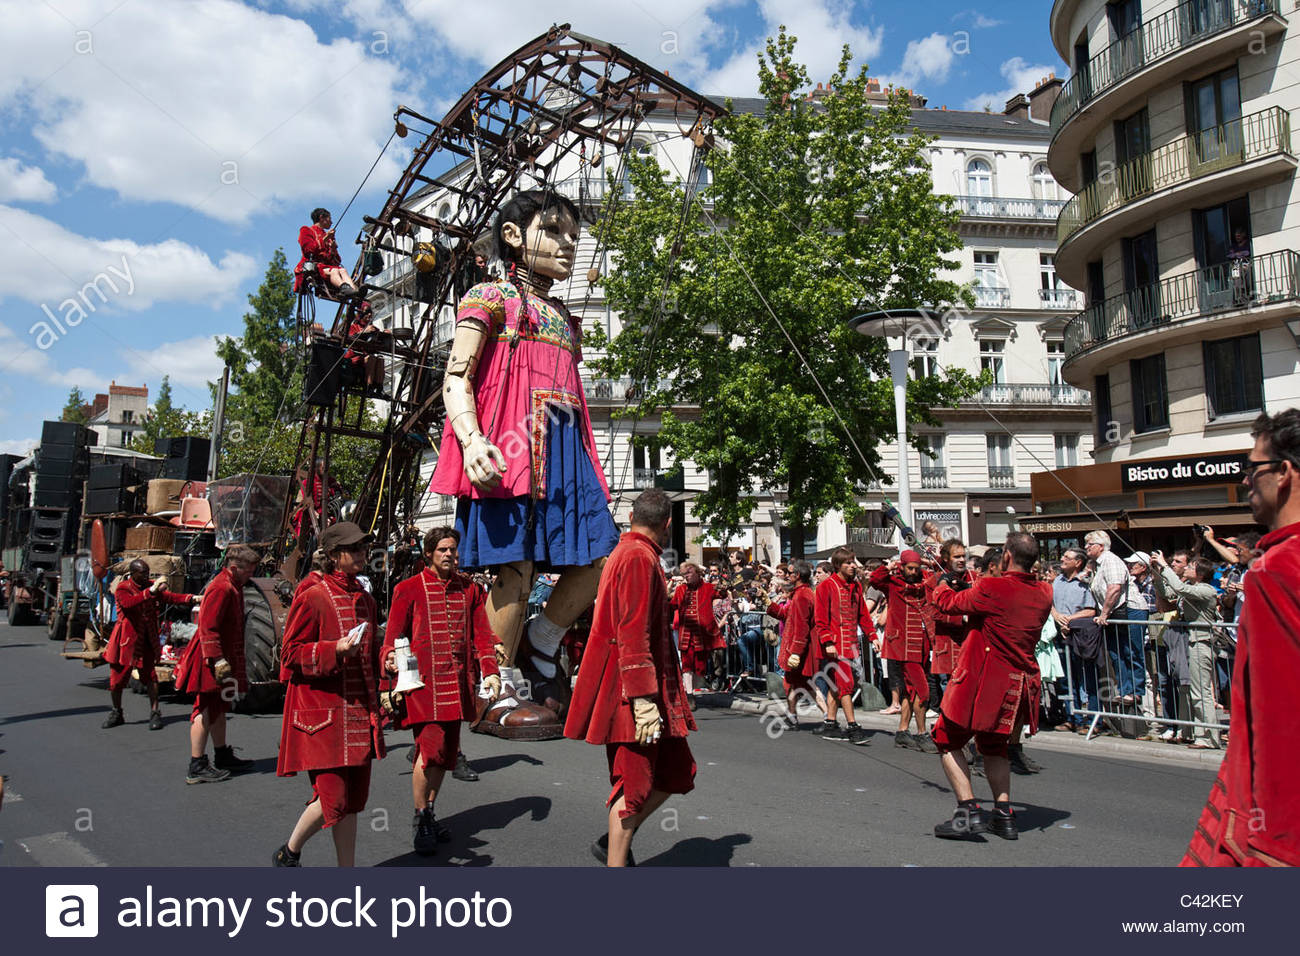 The Little Giant, a giant marionette by Royal de Luxe, walks through the streets in Nantes, France, May 27, 2011 - Stock Image